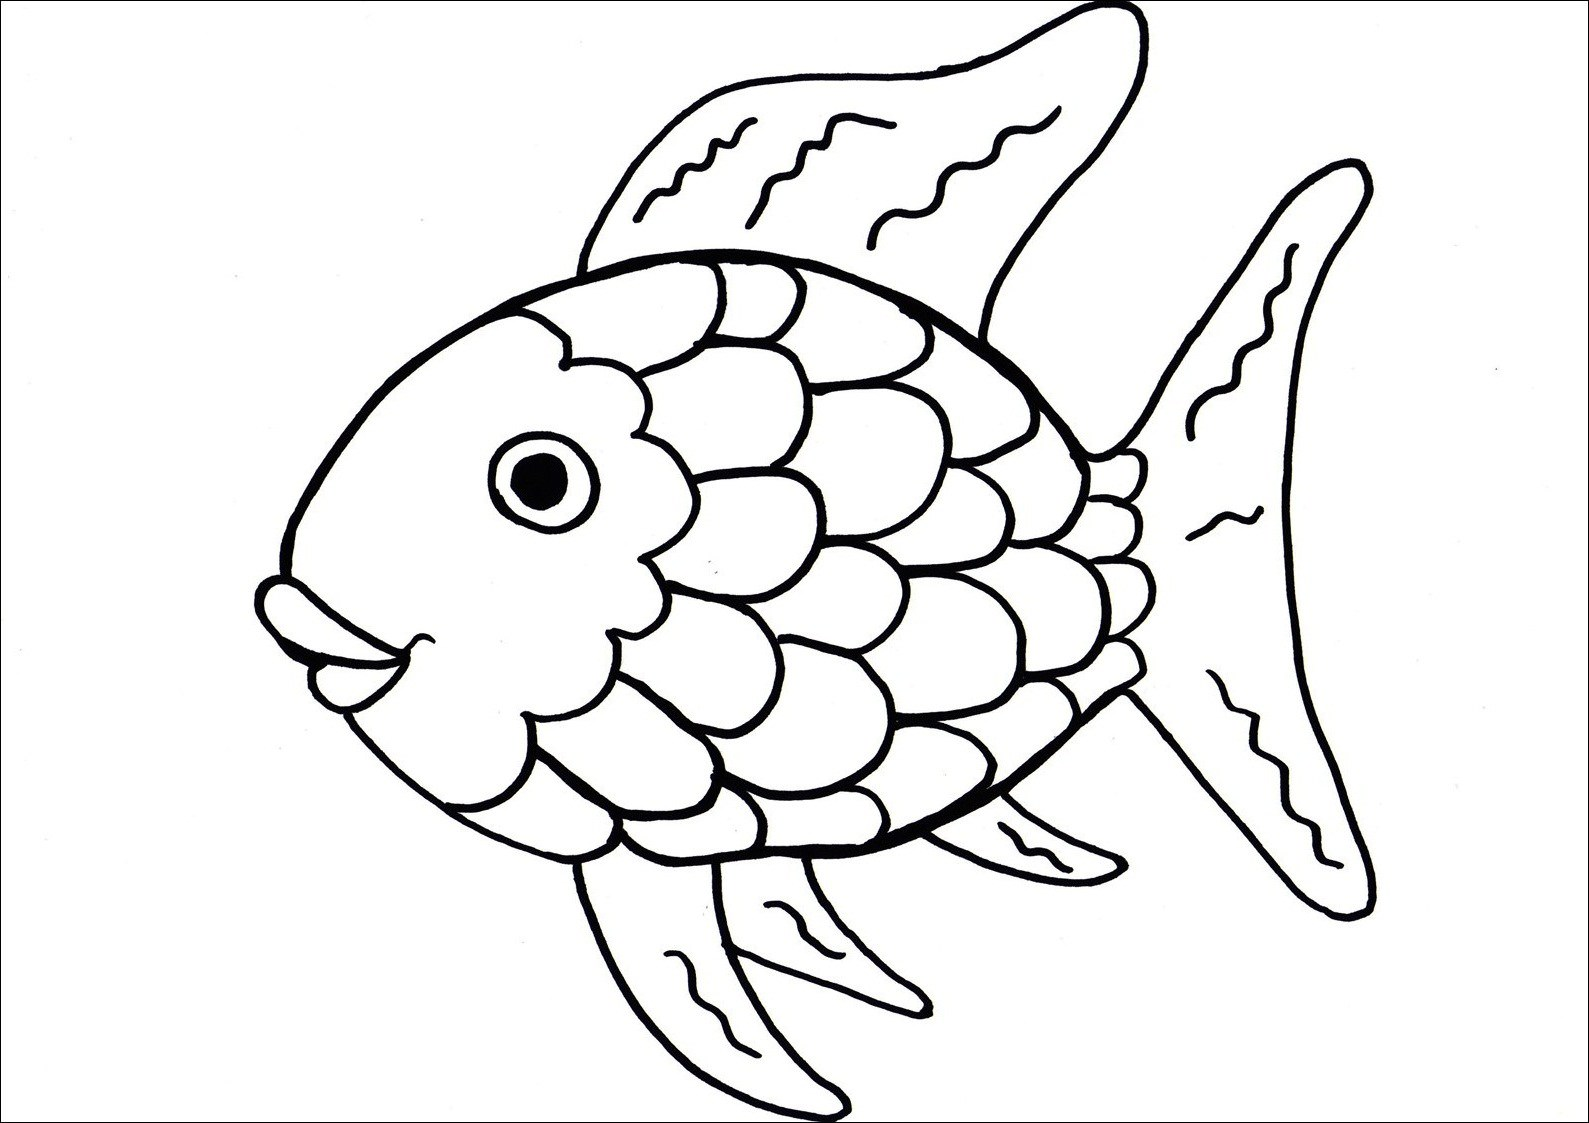 1589x1123 Fish With Scales Coloring Page